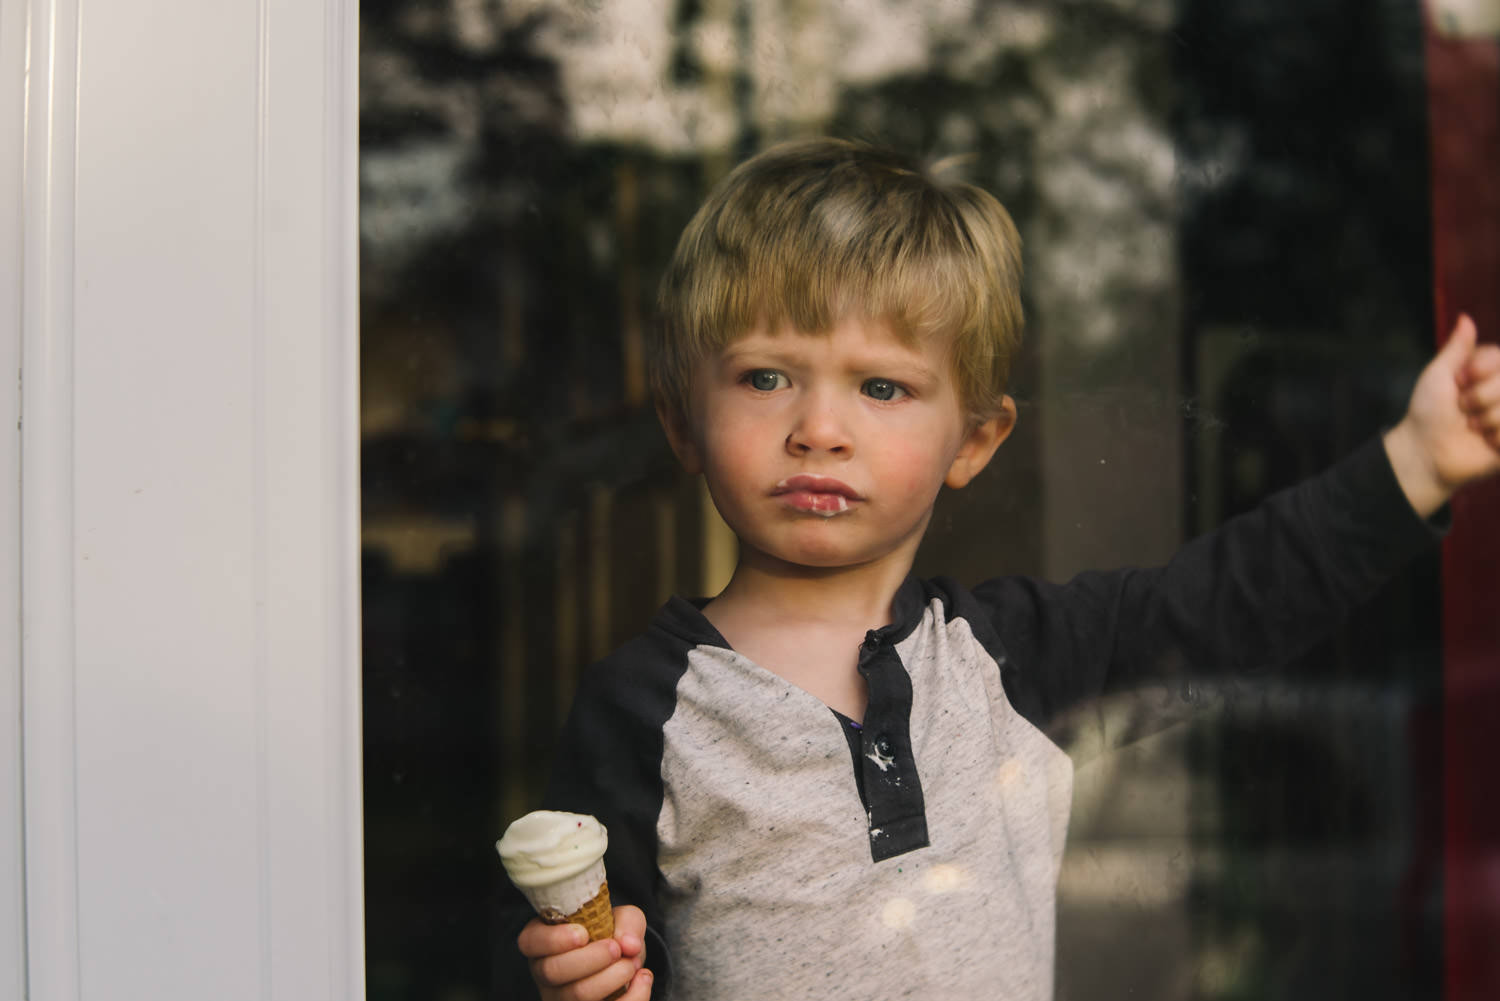 A little boy eating an ice cream cone looks out the storm door.